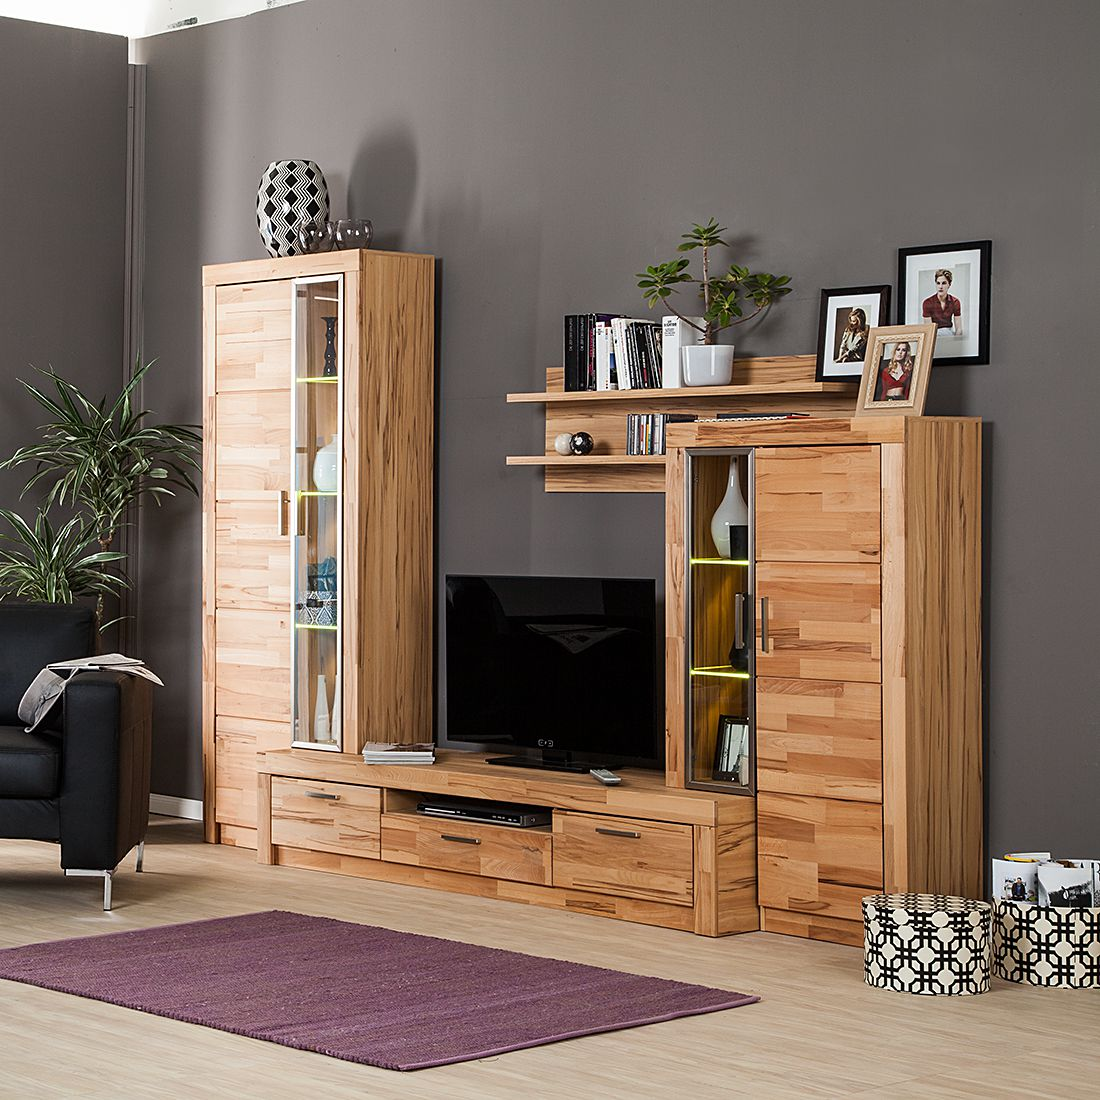 wohnwand foxstone 4 teilig kernbuche teilmassiv. Black Bedroom Furniture Sets. Home Design Ideas